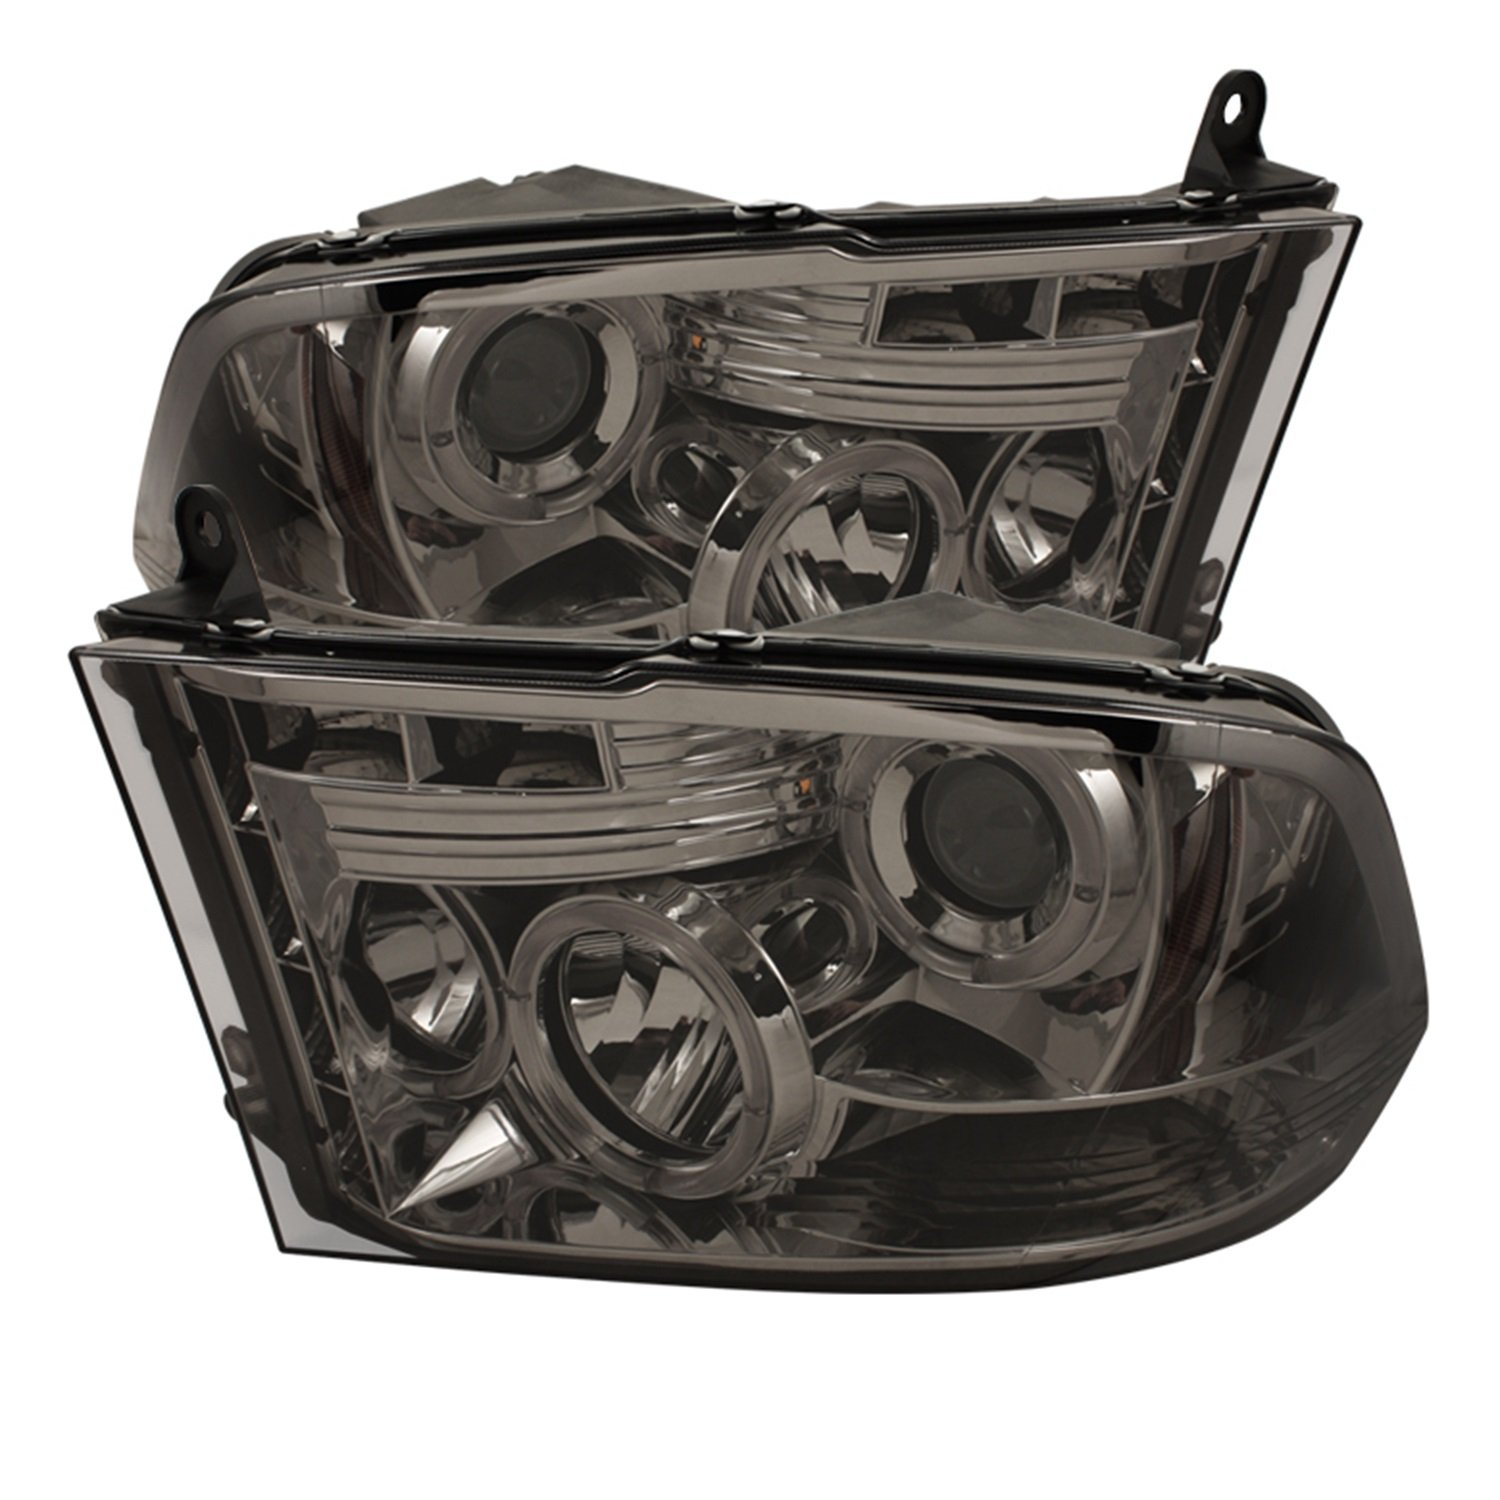 Amazon.com: Spyder Auto PRO-YD-DR09-HL-SM Smoke Halo LED Projection  Headlight: Automotive